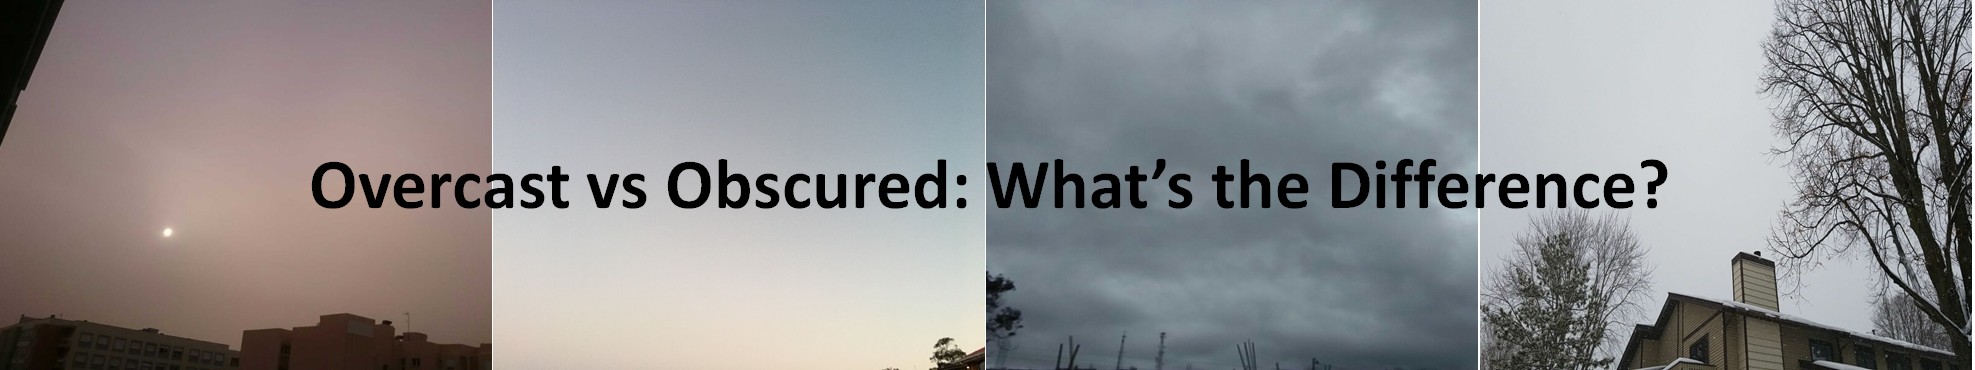 Image of Obscured Sky vs Overcast Sky